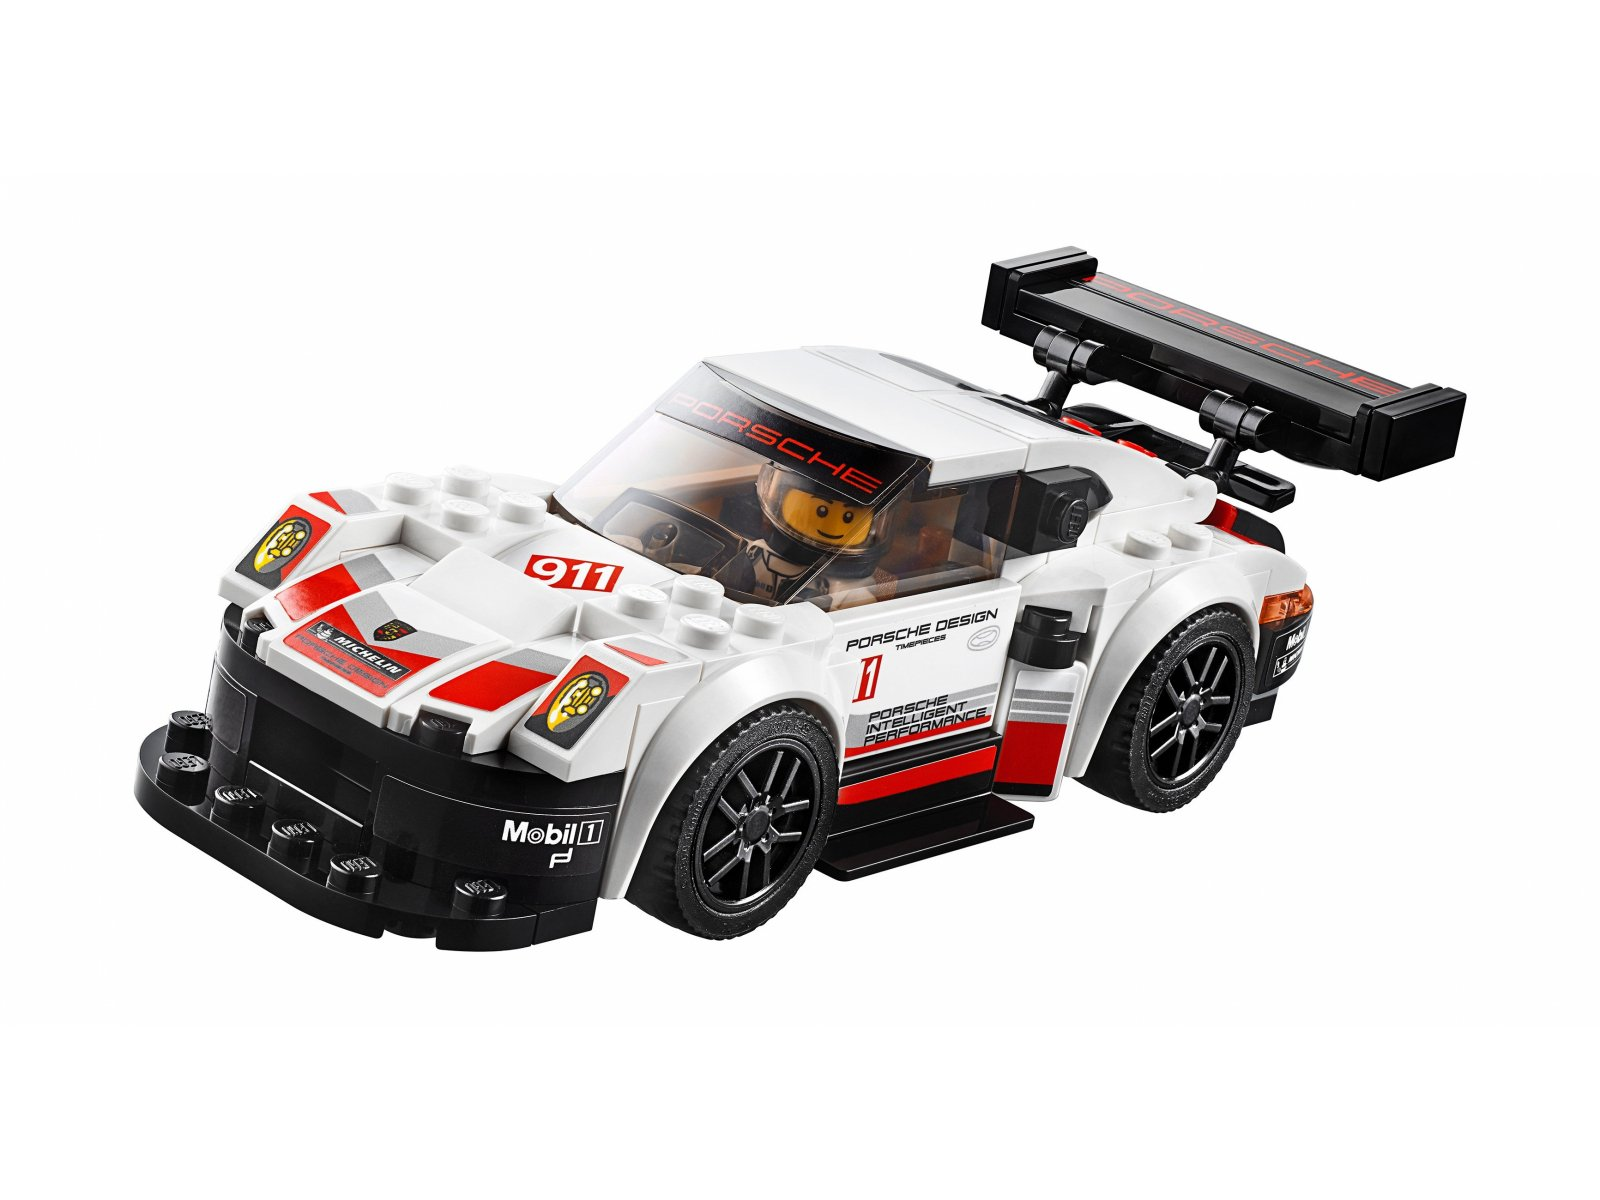 75888 lego speed champions porsche 911 rsr i 911 turbo 3 0. Black Bedroom Furniture Sets. Home Design Ideas